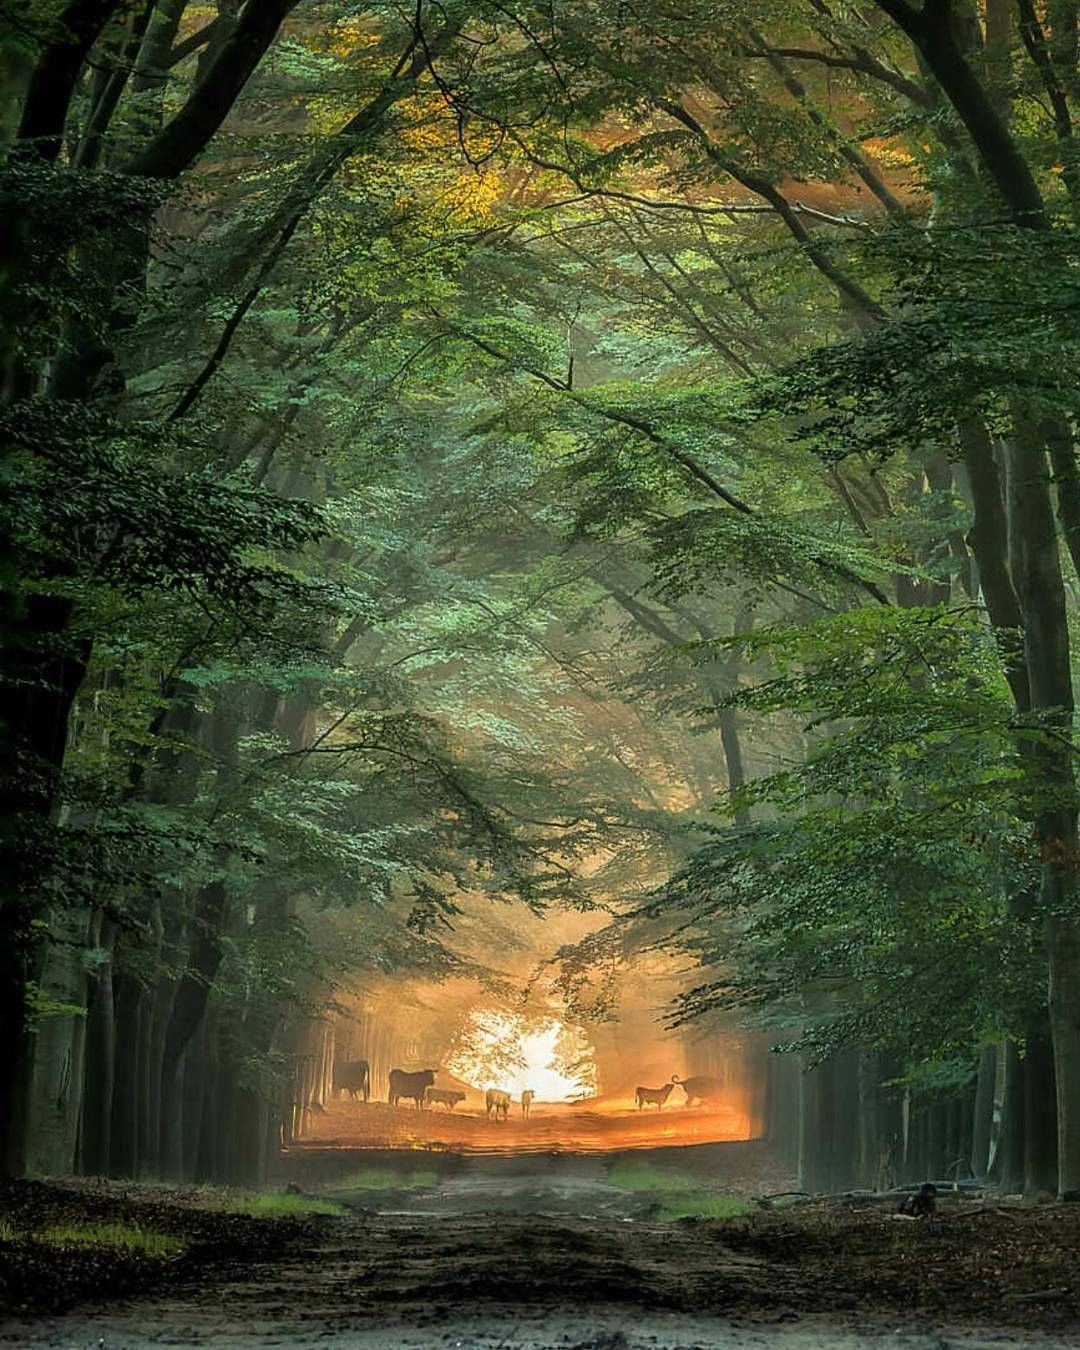 .  Sunny ahead.   Photography by © (Hans Soowij). A beautifull morning near Arnhem when i was watching the wild cows to cross the road. #wilderness #wildlife #forest #road lane #path #way #nature #arnhem #gelderland